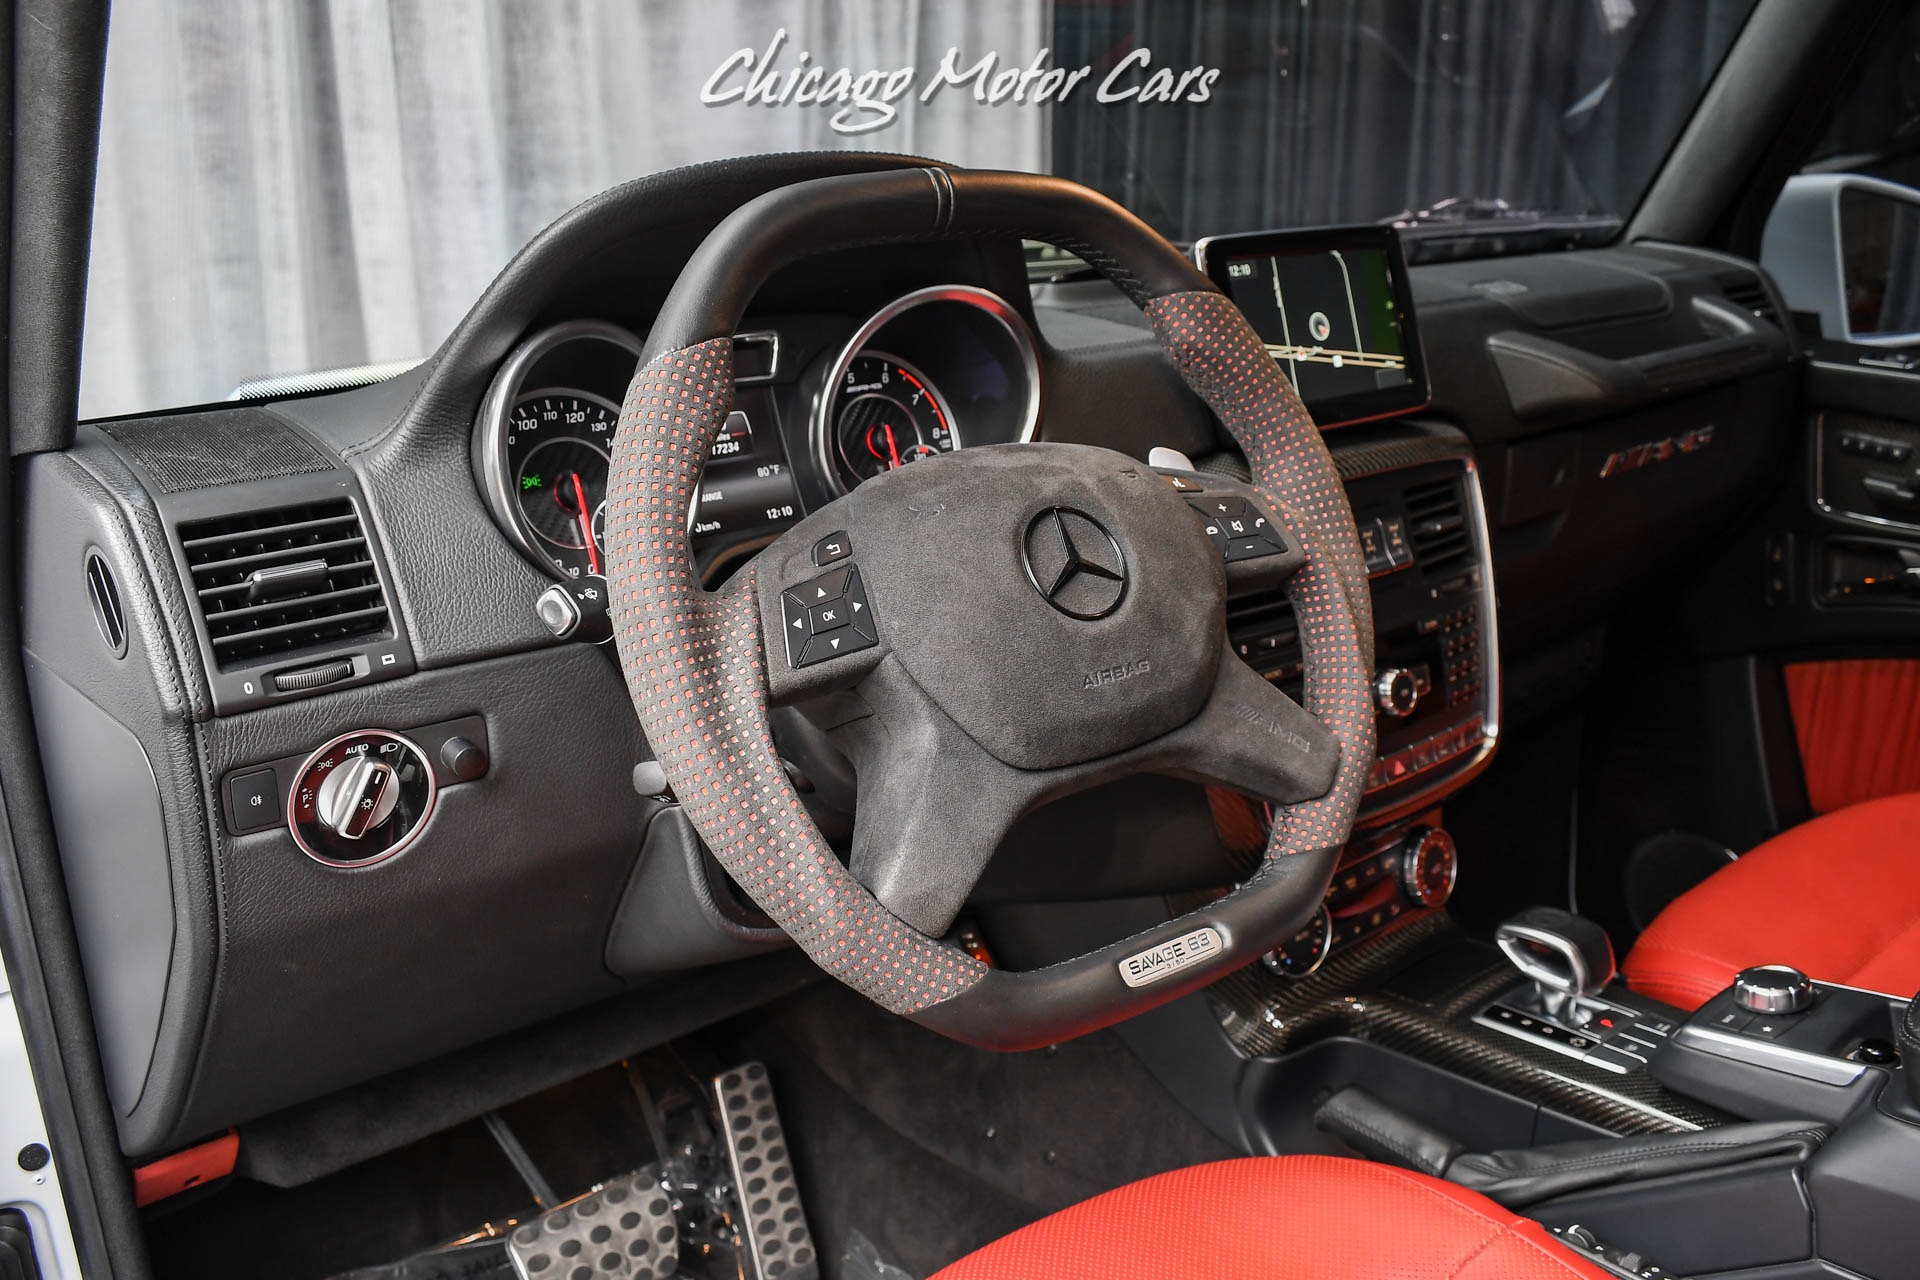 Used-2016-Mercedes-Benz-G-Class-AMG-G63-SUV-0350-SAVAGE-EDITIONS-100K-IN-UPGRADES